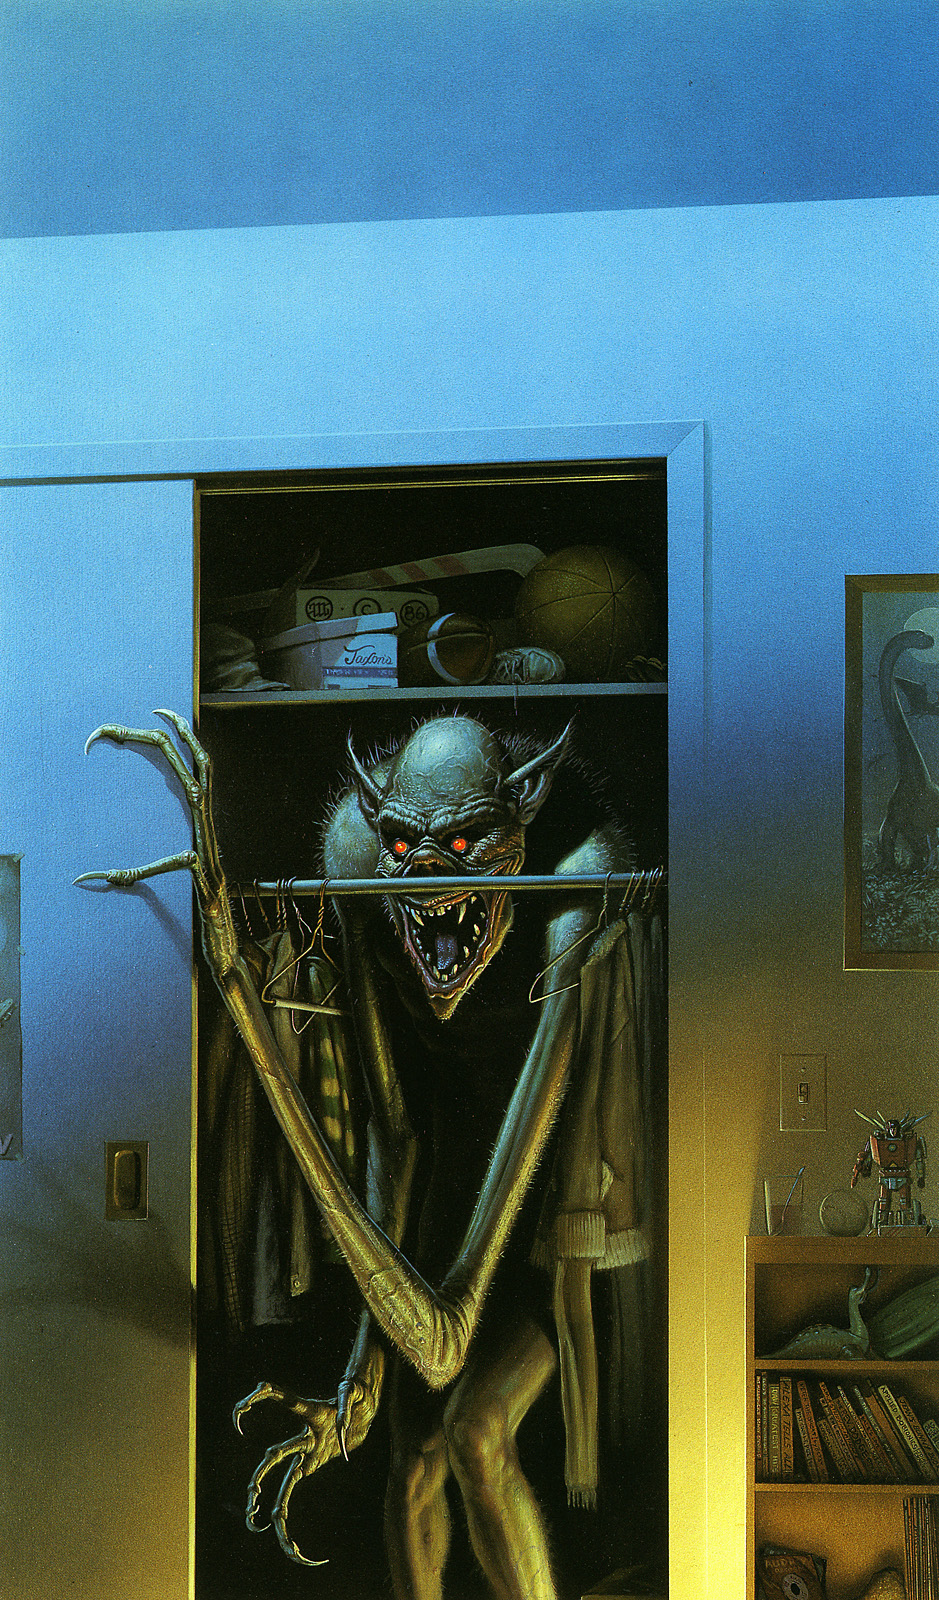 Fantasy and Horror art. Boogeyman. The following set of pictures are artwork by Michael Whelen, and following whelen's will be a set of artwork by Frank Frazett